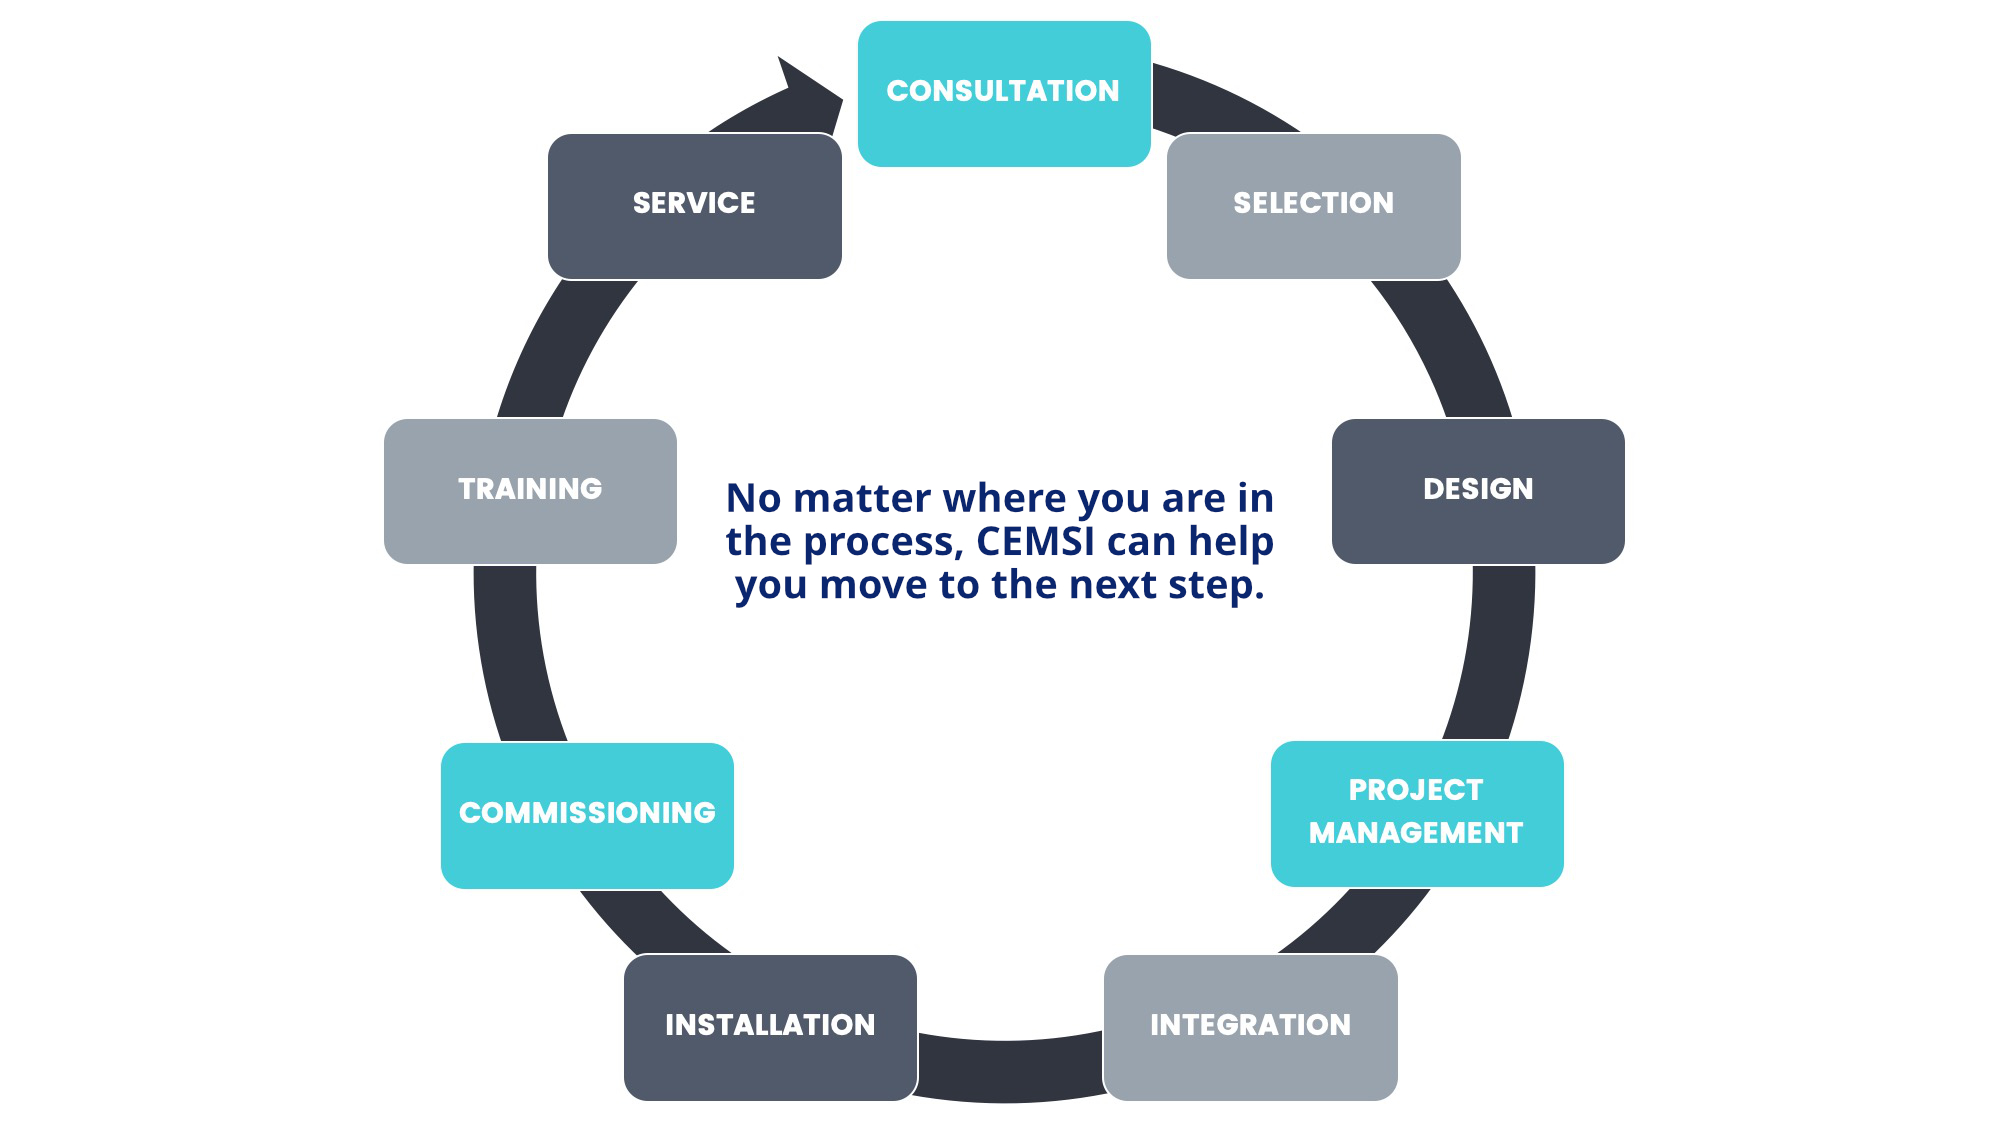 No matter where you are in the process, CEMSI can help you move to the next step.